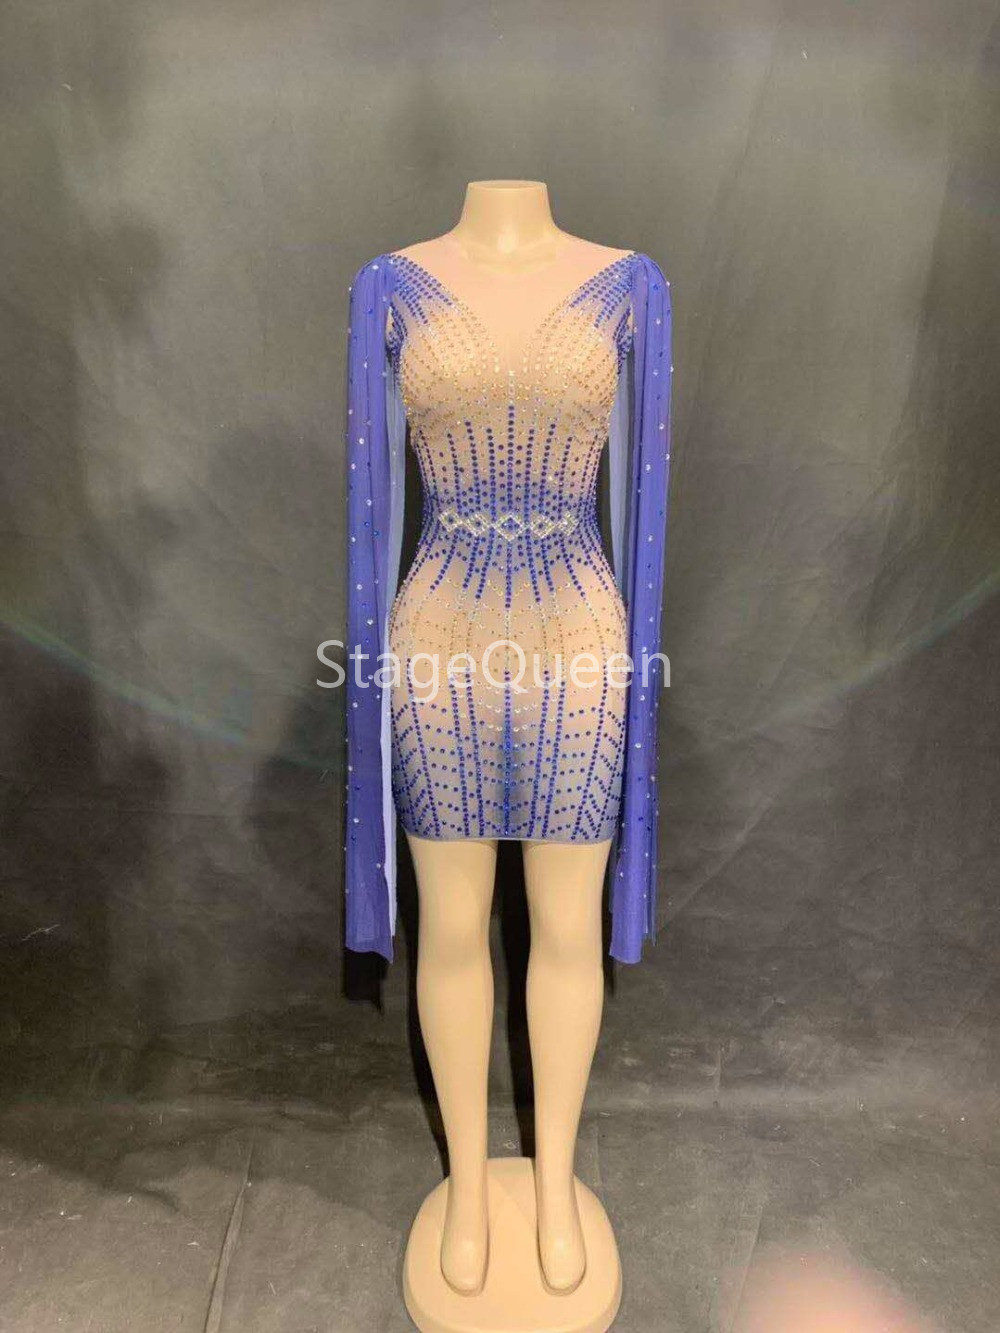 2019 Fashion Blue Long Sleeves Perspective Mesh Dress Women Celebrate See Through Dress Sexy Skinny Costume Dance Short Dress